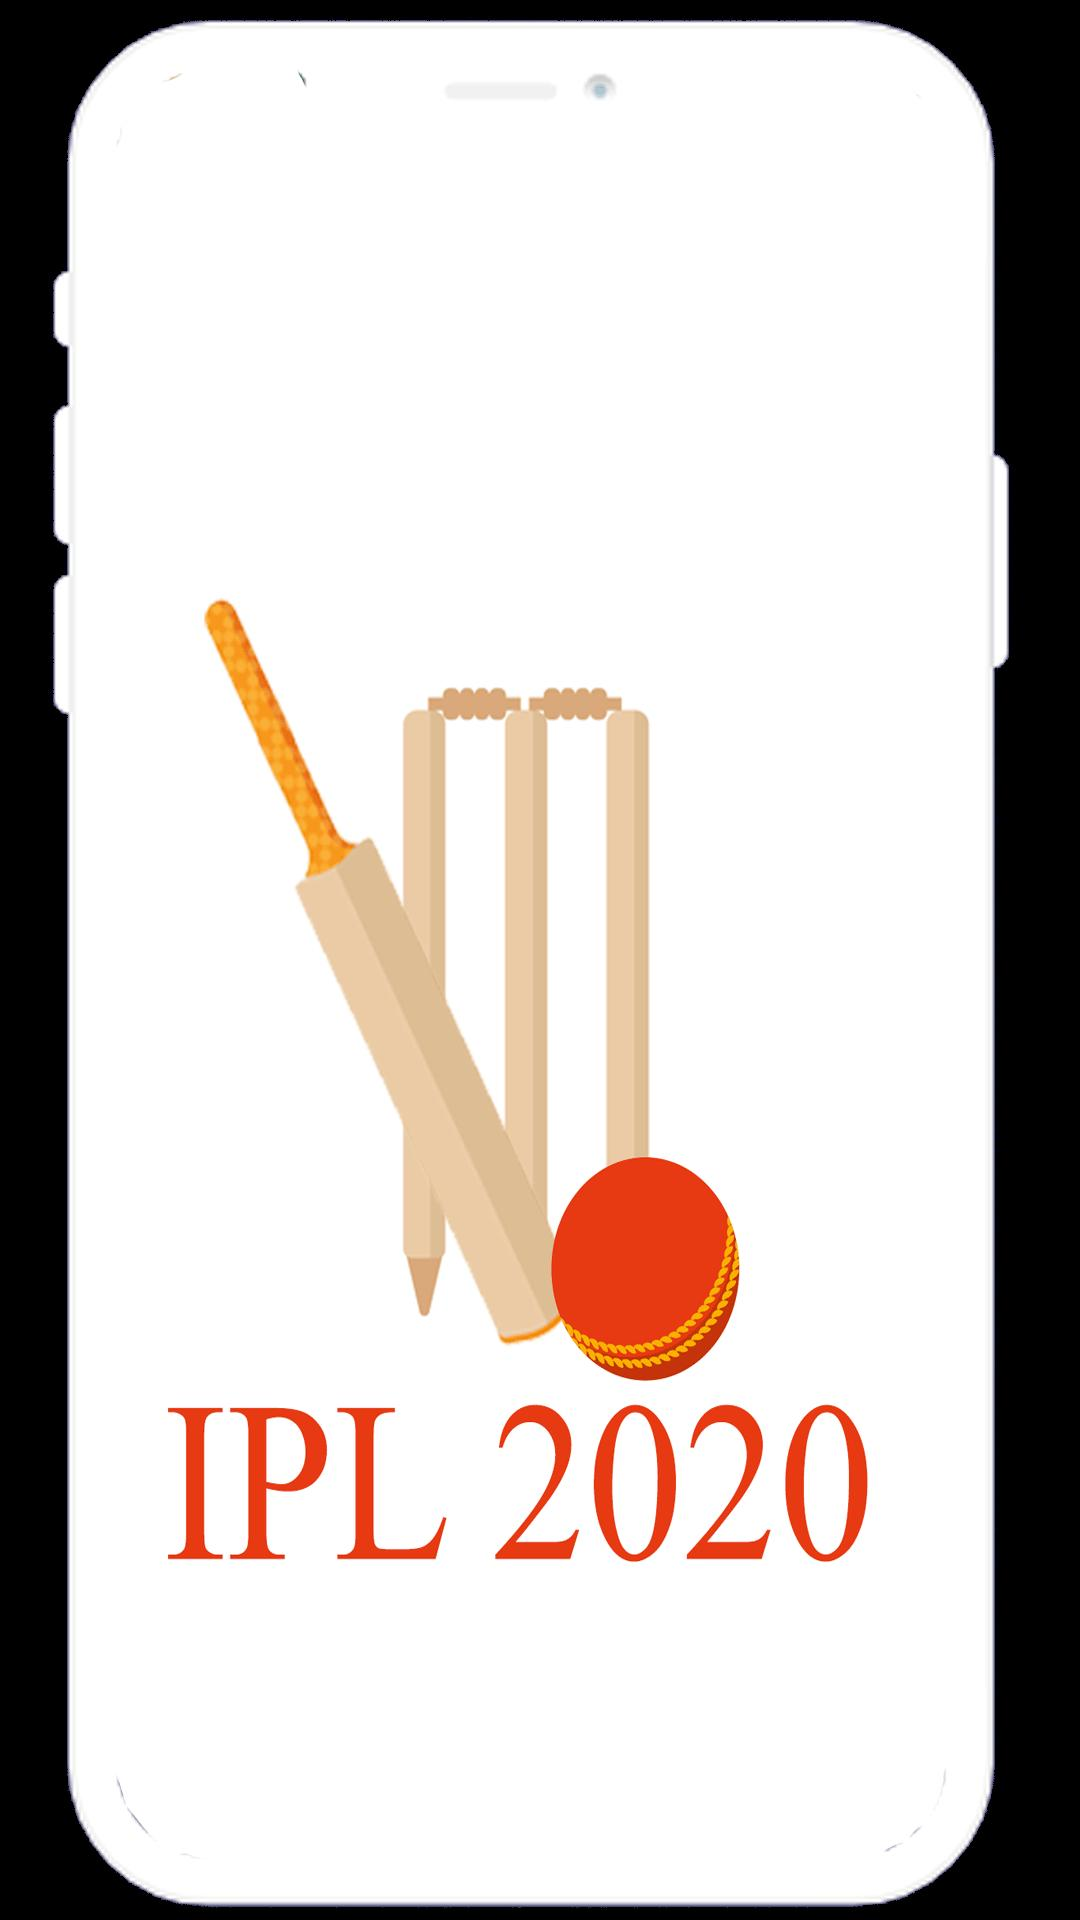 Ipl 2020 Live Score Match Point Table Schedule For Android Apk Download